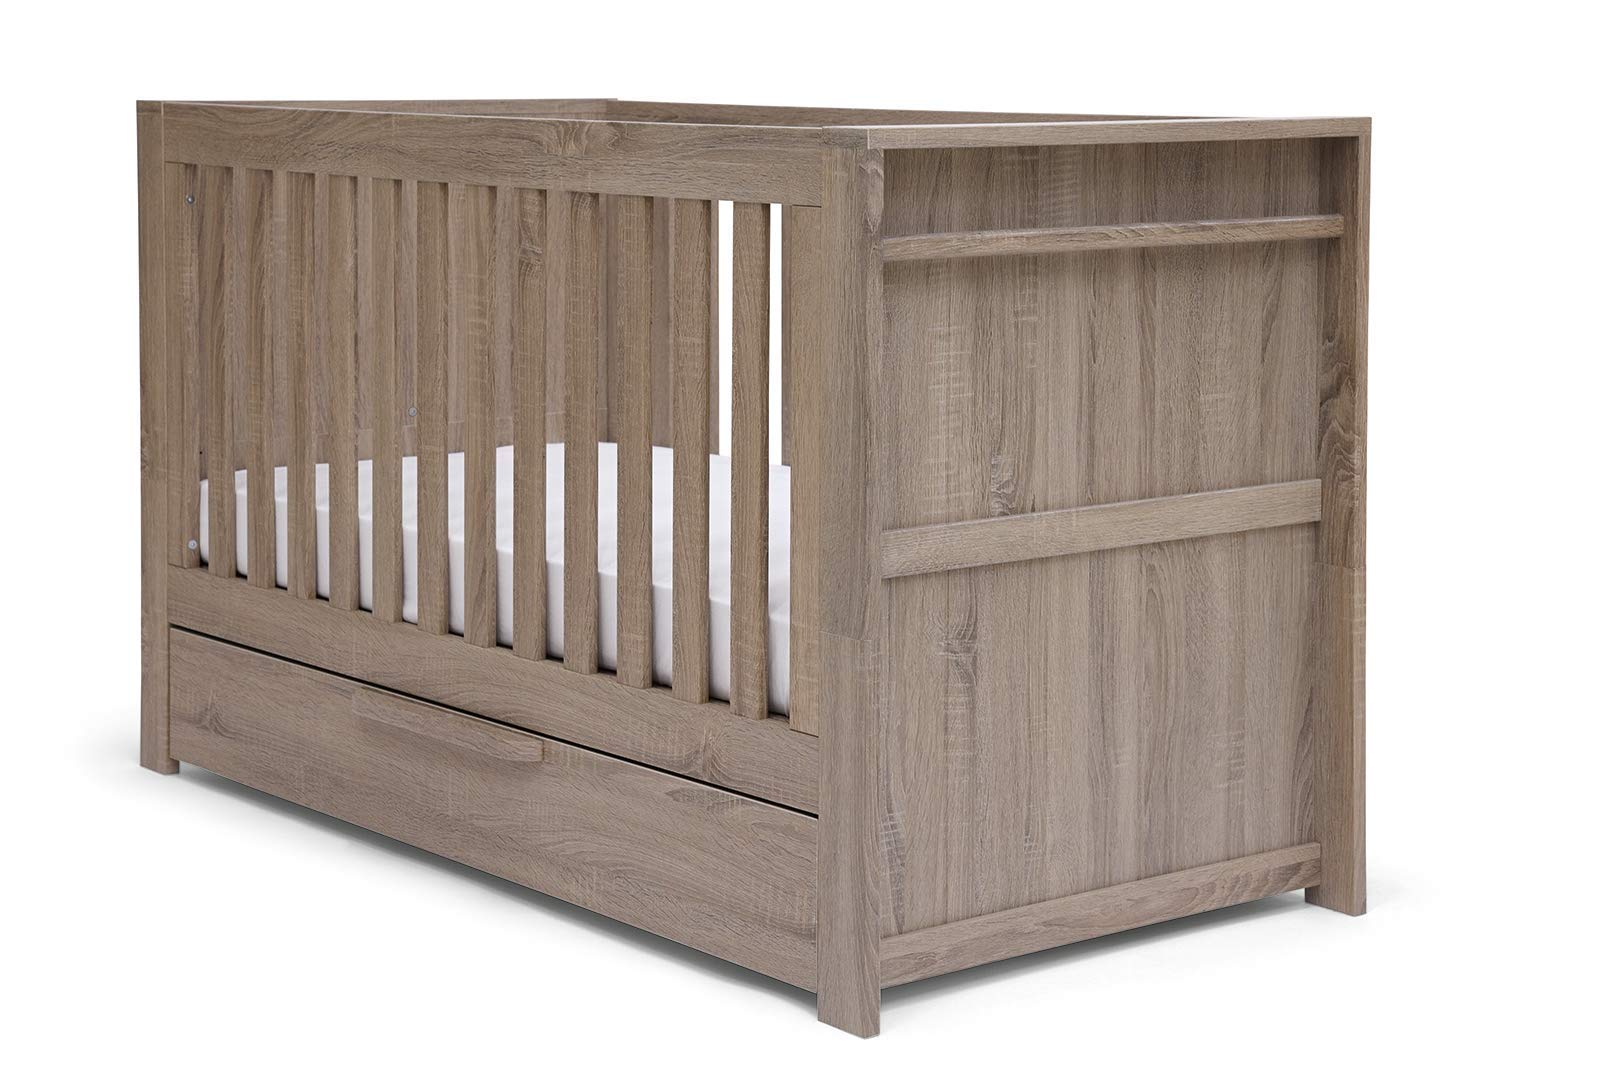 Mamas & Papas Franklin Cot/Toddler Bed Grey Wash Mamas & Papas SAVE £49 - compared to buying items individually COT BED – The 3-in-1 cot bed has 2 base positions and converts into a toddler bed and day bed to grow with your child and there's a handy draw for extra storage. DRESSER CHANGER – Provides you all of your nursery storage needs with 3 soft close draws giving you plenty of space. 1